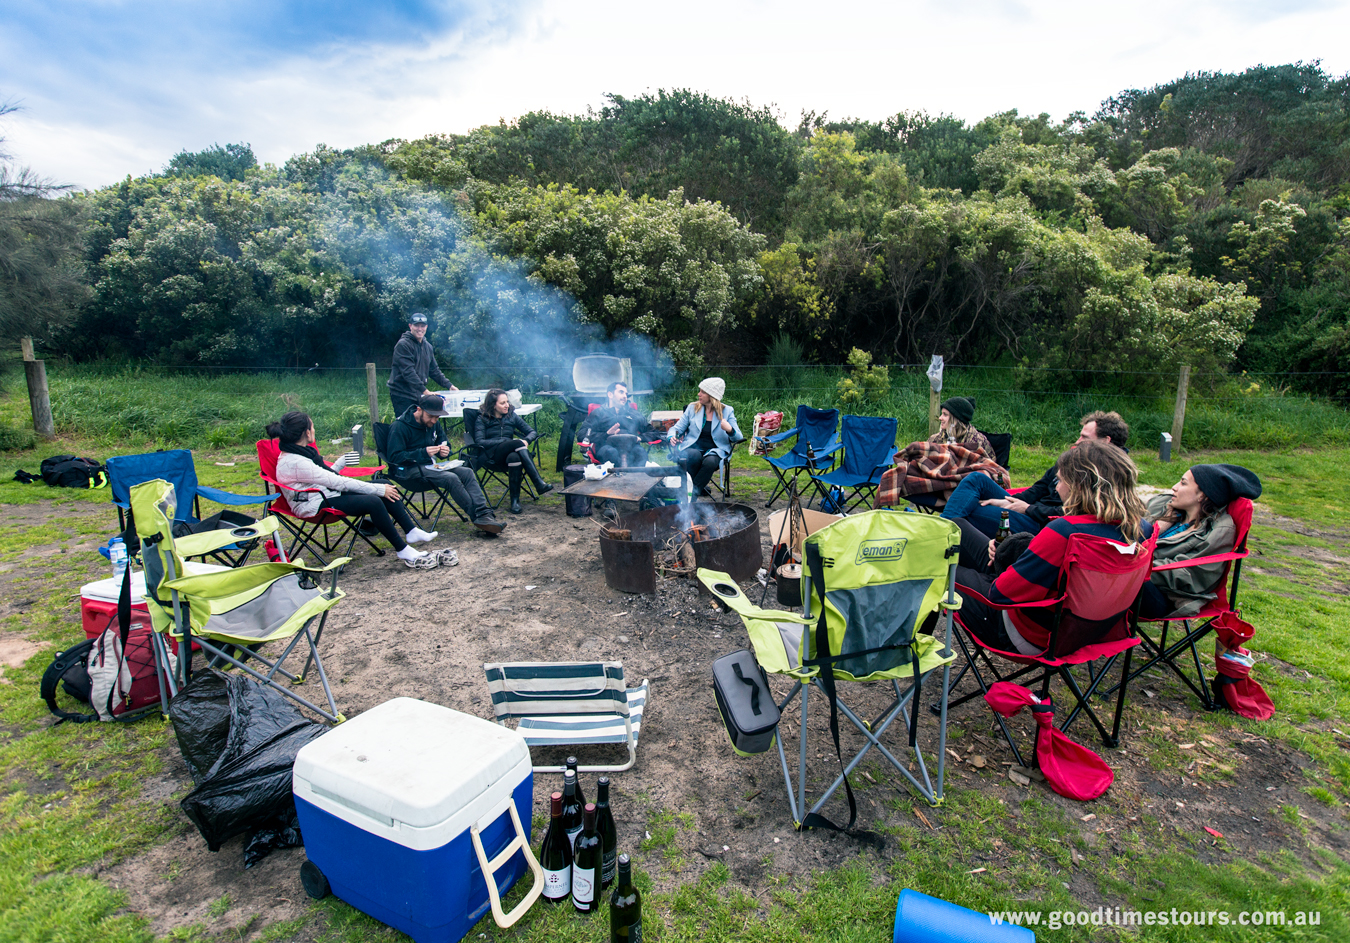 walking and great camping story Here are some places close to home that are perfect for camping  and a hiking  trail that circles the body of water offers some great views.